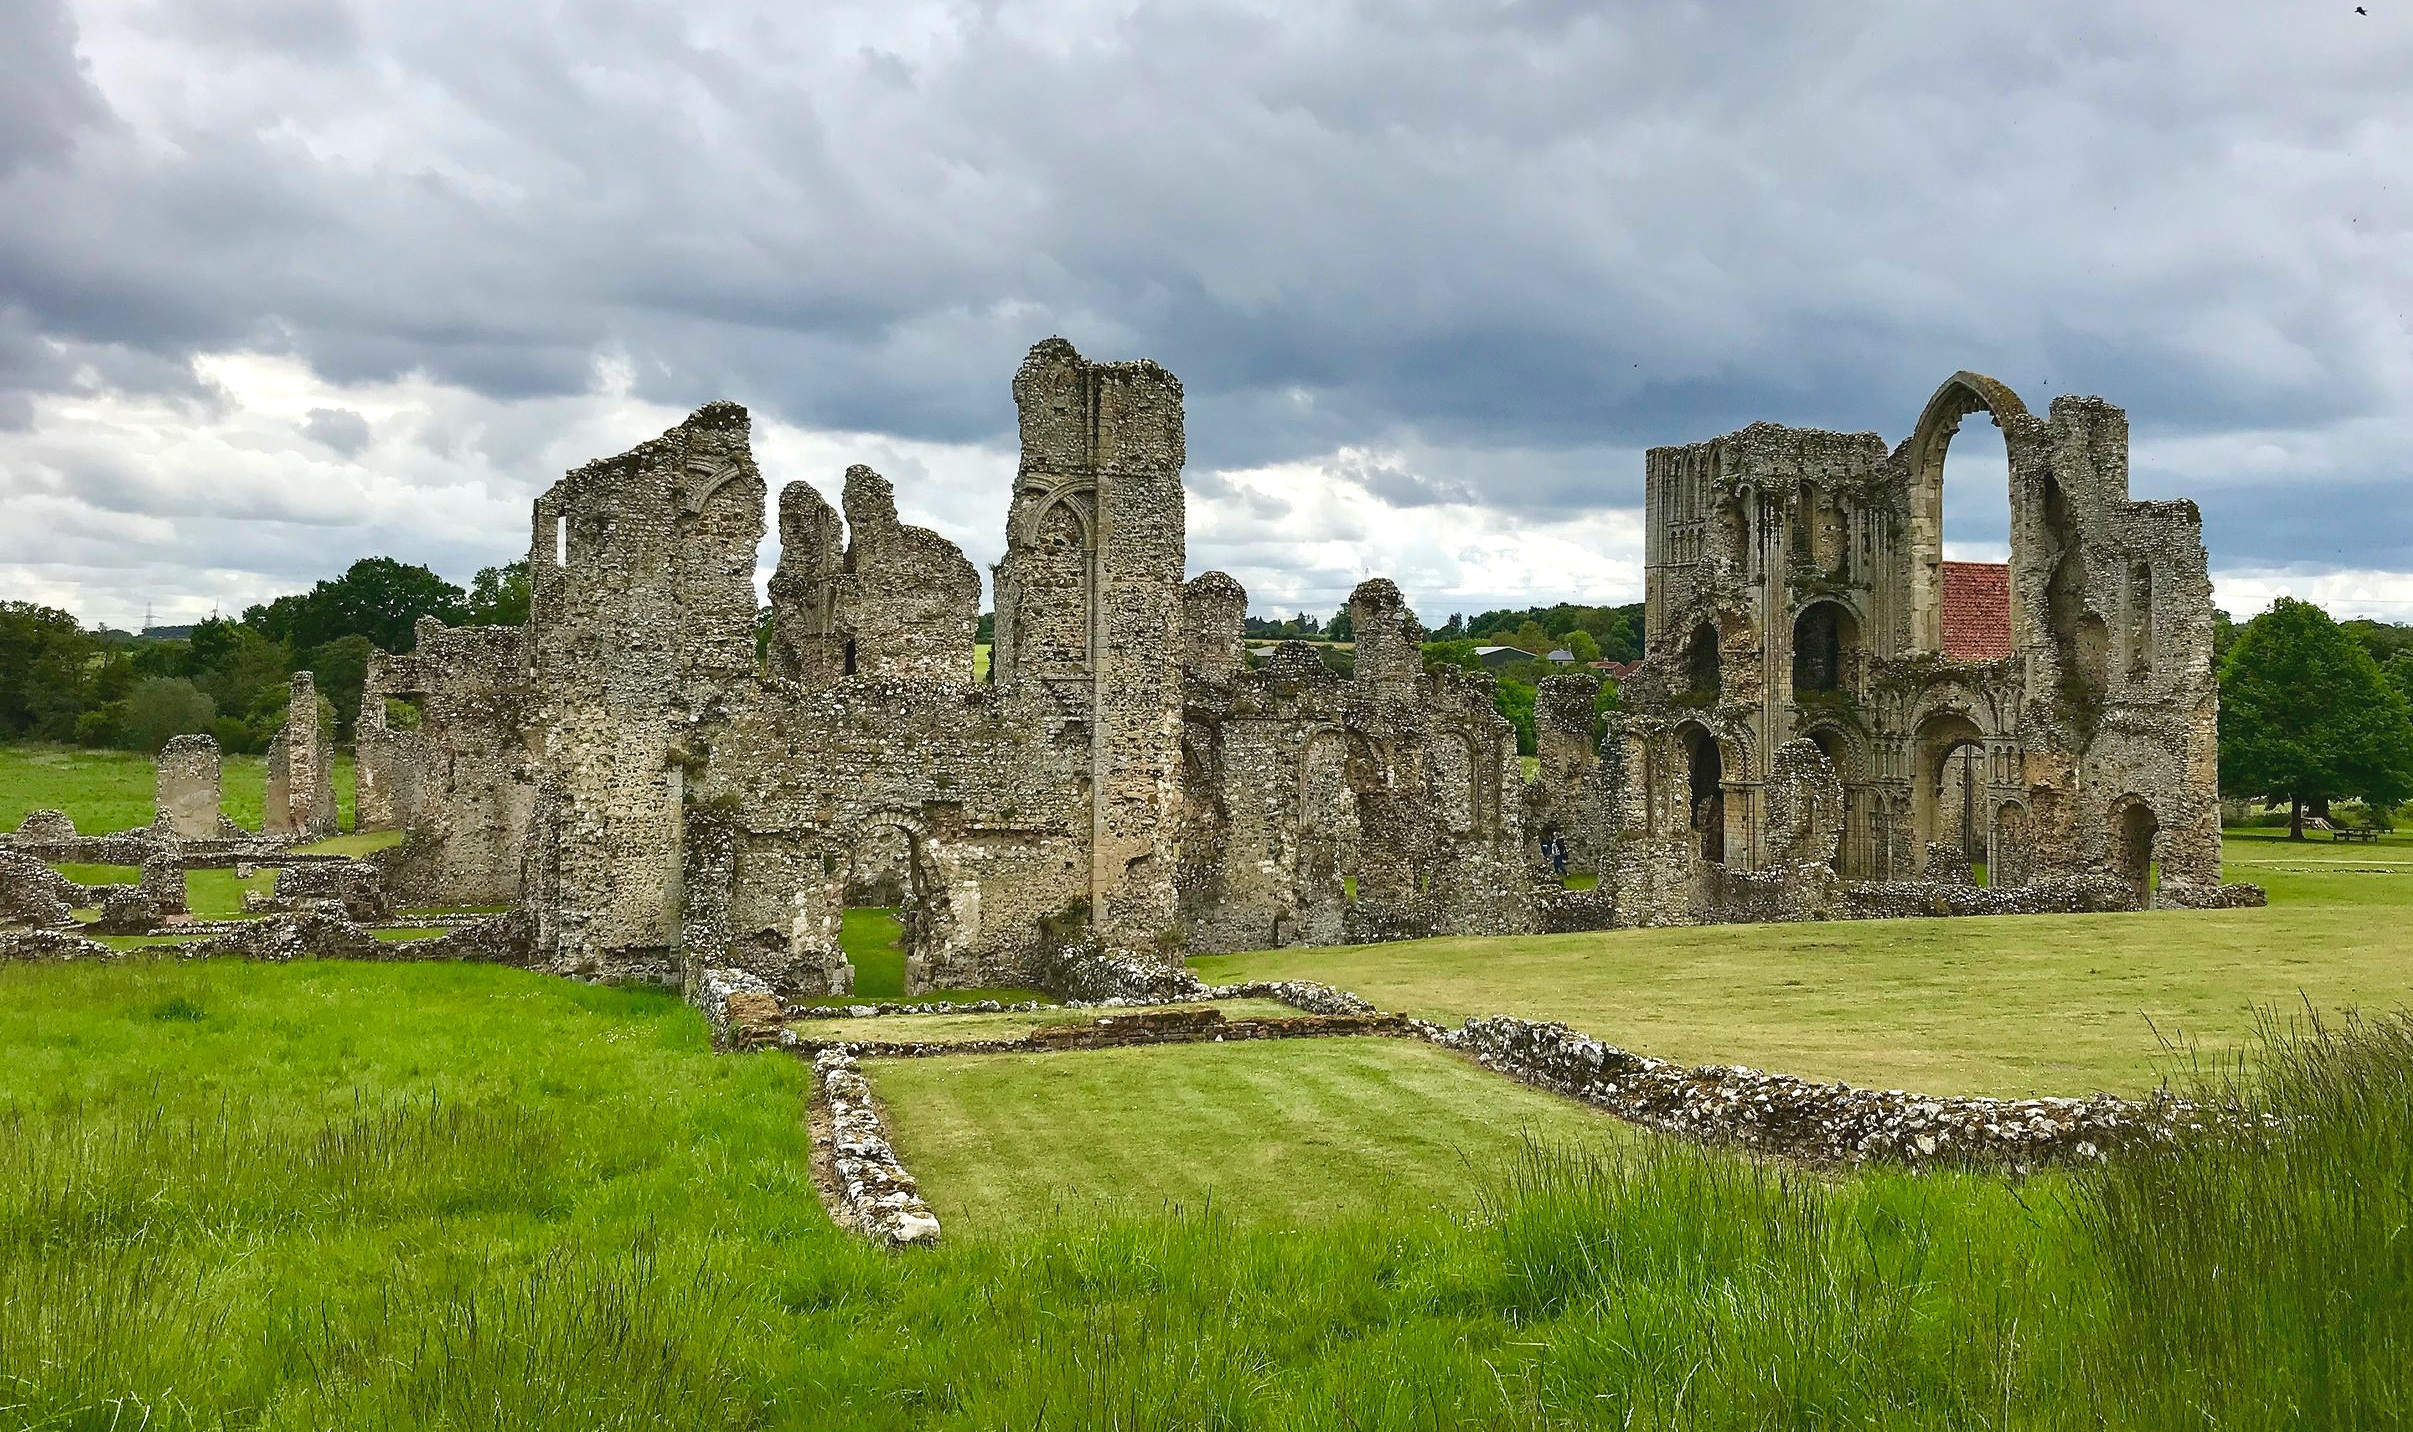 The astonishing ruins of Castle Acre Priory give you a real sense of what living there must have been like for the Cluniac monks